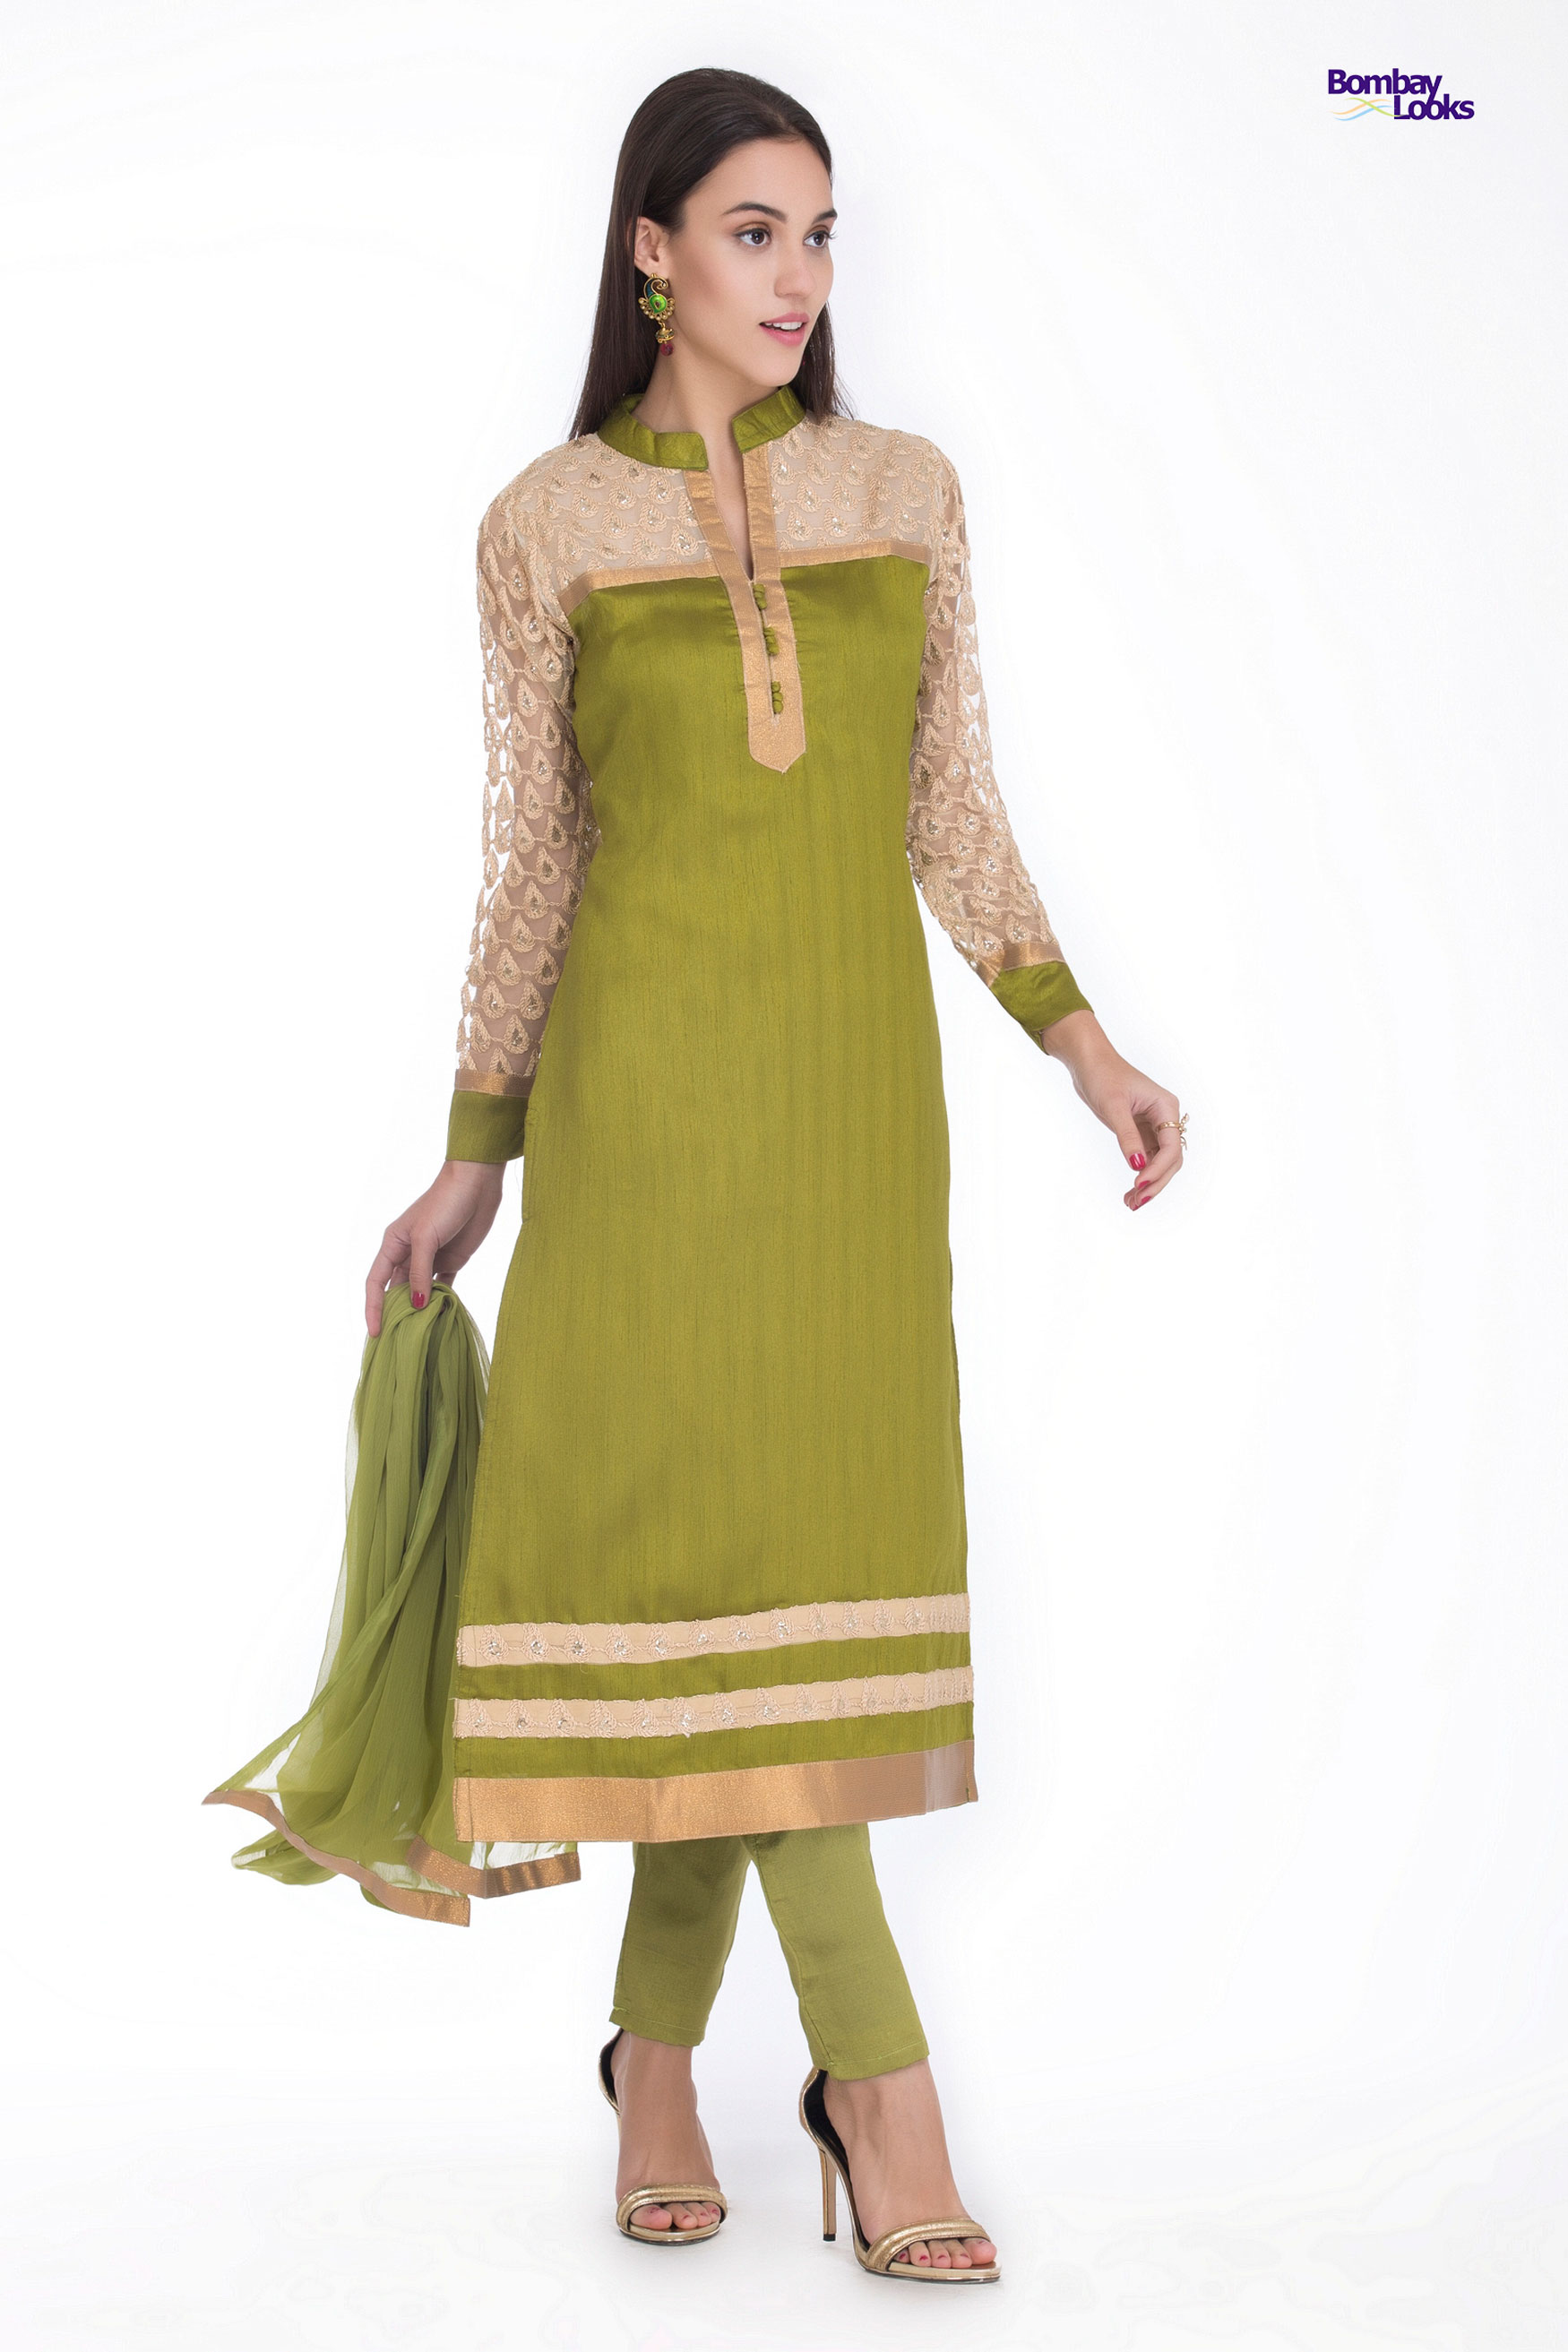 Smart green dupion silk spring suit with lace embroidery on sleeves and bodice